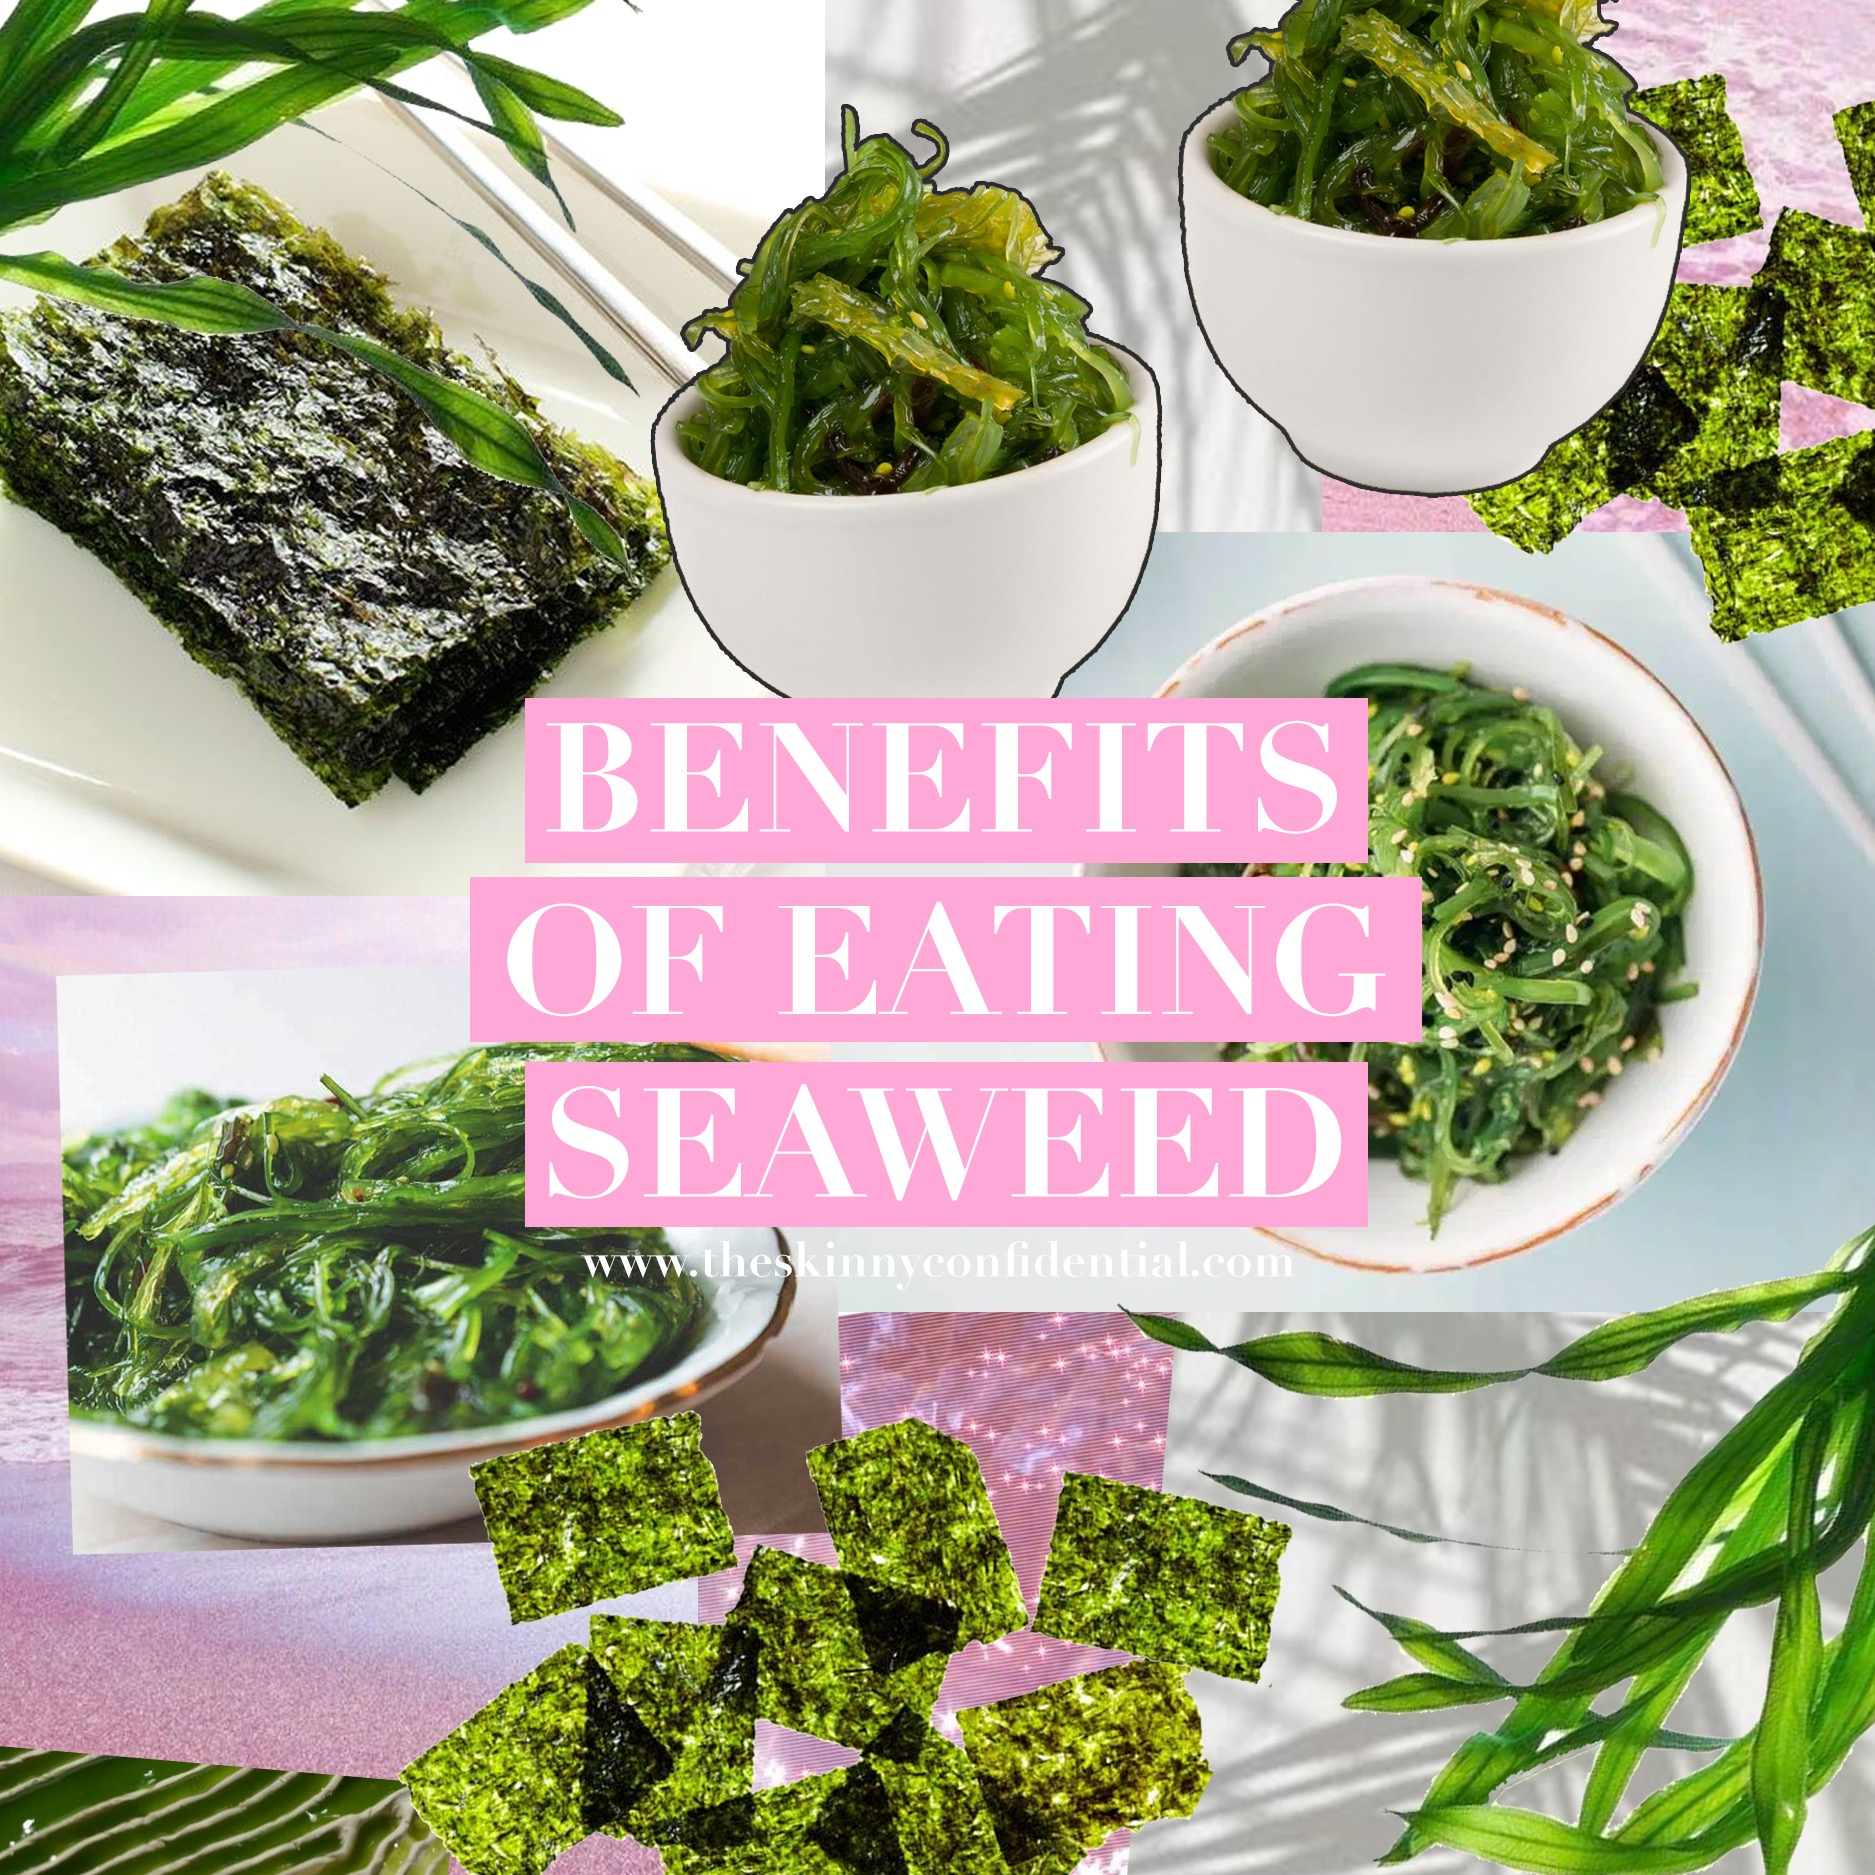 benefits of eating seaweed by the skinny confidential